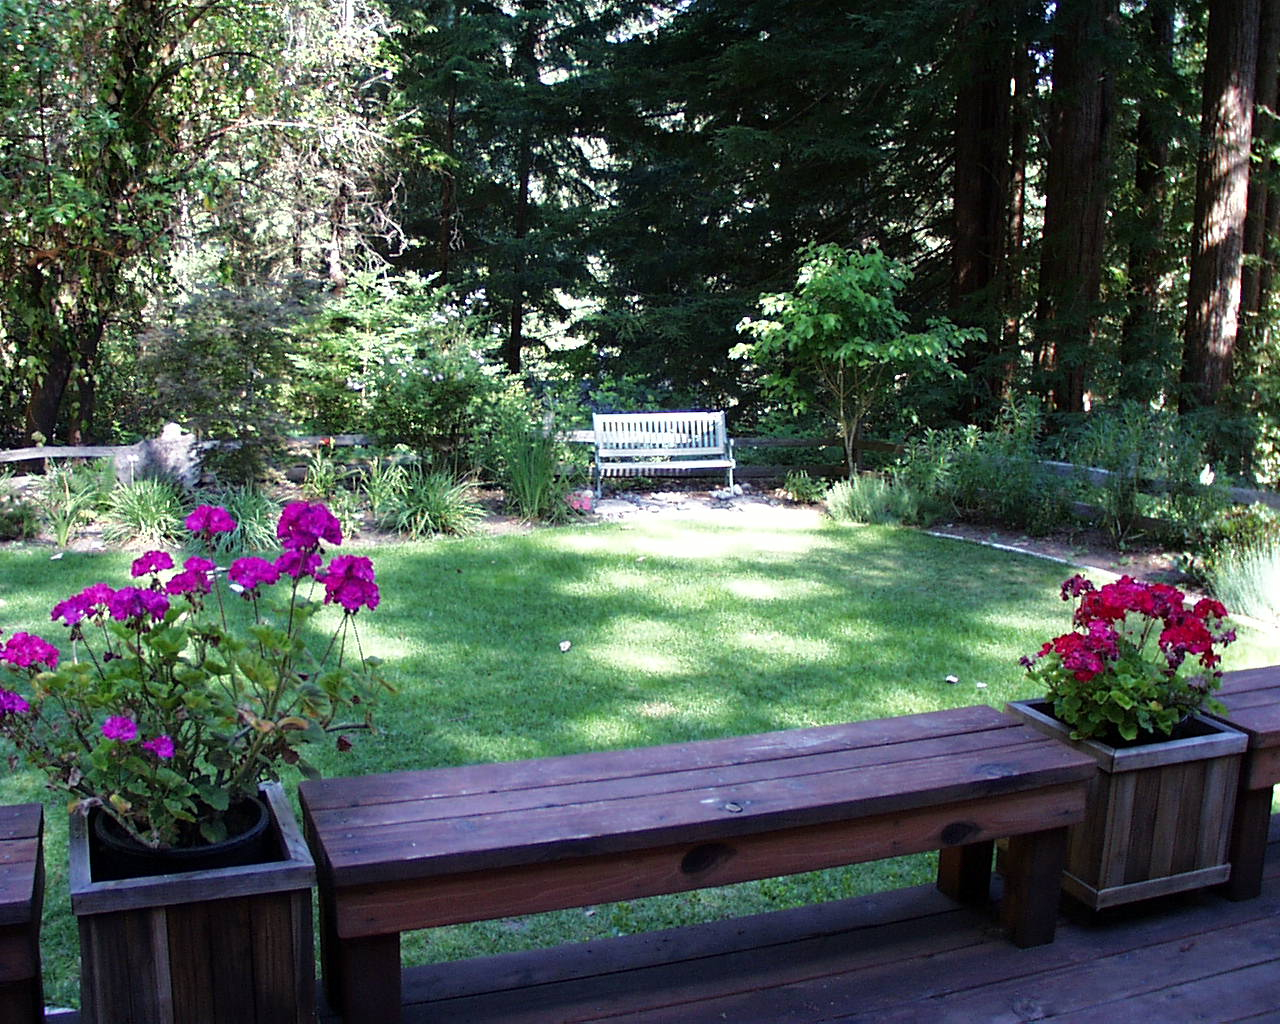 Garden Home Backyard Design Good Backyard Ideas Lawn Designs For intended for 14 Some of the Coolest Ideas How to Upgrade Ideas For Backyard Gardens